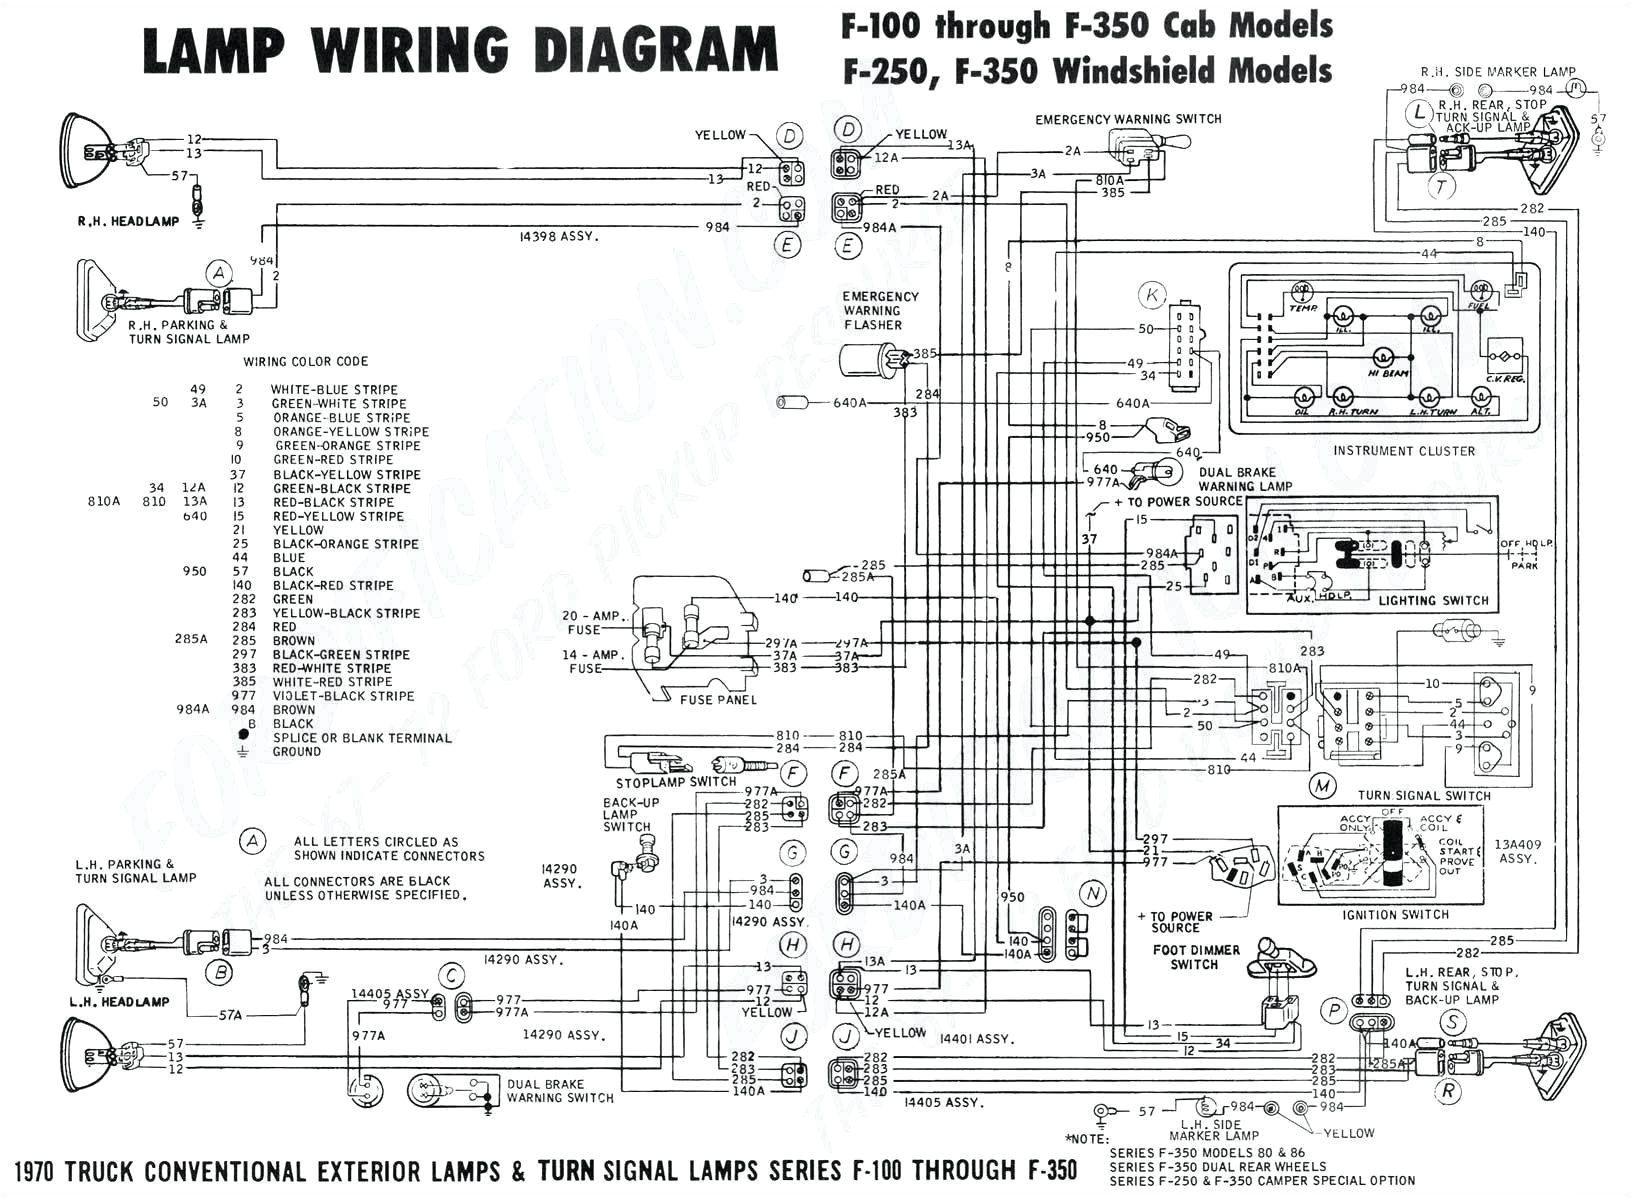 zx9r fuel pump relay wiring harness electrical schematic wiring kawasaki zx9 r radiator fan circuit and